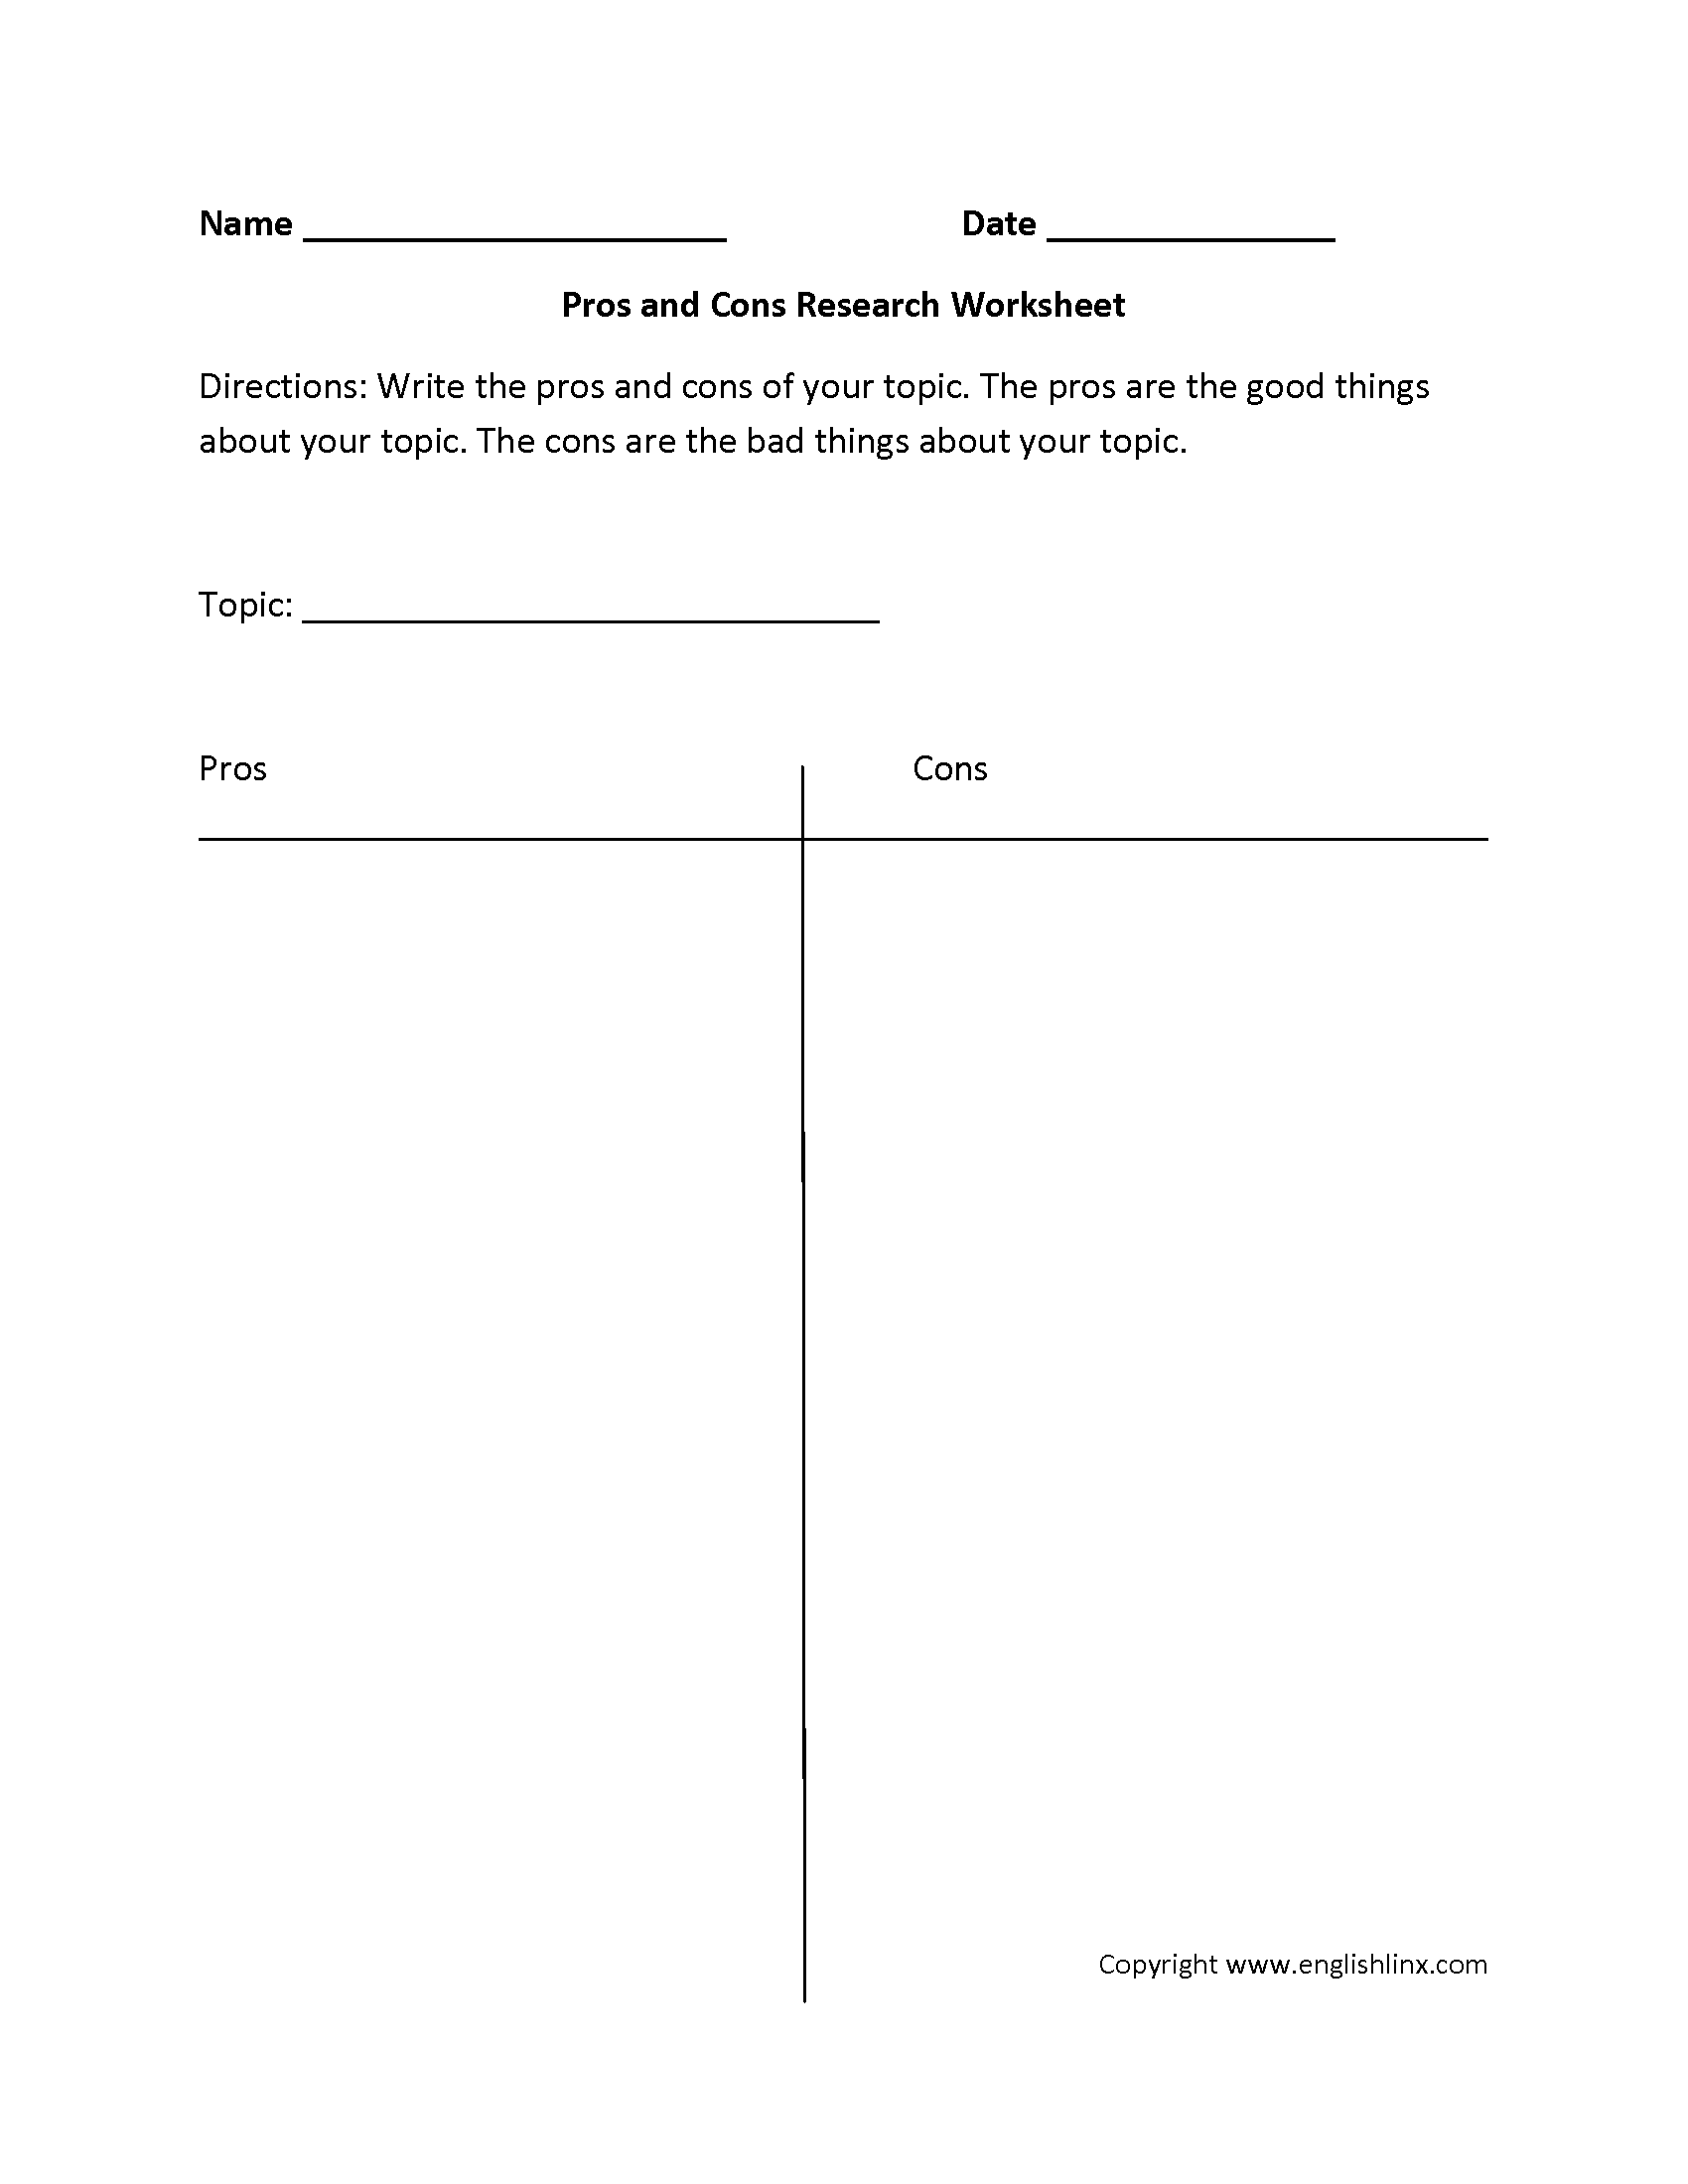 Aldiablosus  Winsome Englishlinxcom  Research Worksheets With Remarkable Research Worksheet With Attractive Alphabet Letters Worksheets Printable Also Circle Geometry Worksheet In Addition Grammar Worksheets For Grade  And Sen Worksheets As Well As Kumon English Worksheets Free Additionally Personification Worksheets For Rd Grade From Englishlinxcom With Aldiablosus  Remarkable Englishlinxcom  Research Worksheets With Attractive Research Worksheet And Winsome Alphabet Letters Worksheets Printable Also Circle Geometry Worksheet In Addition Grammar Worksheets For Grade  From Englishlinxcom